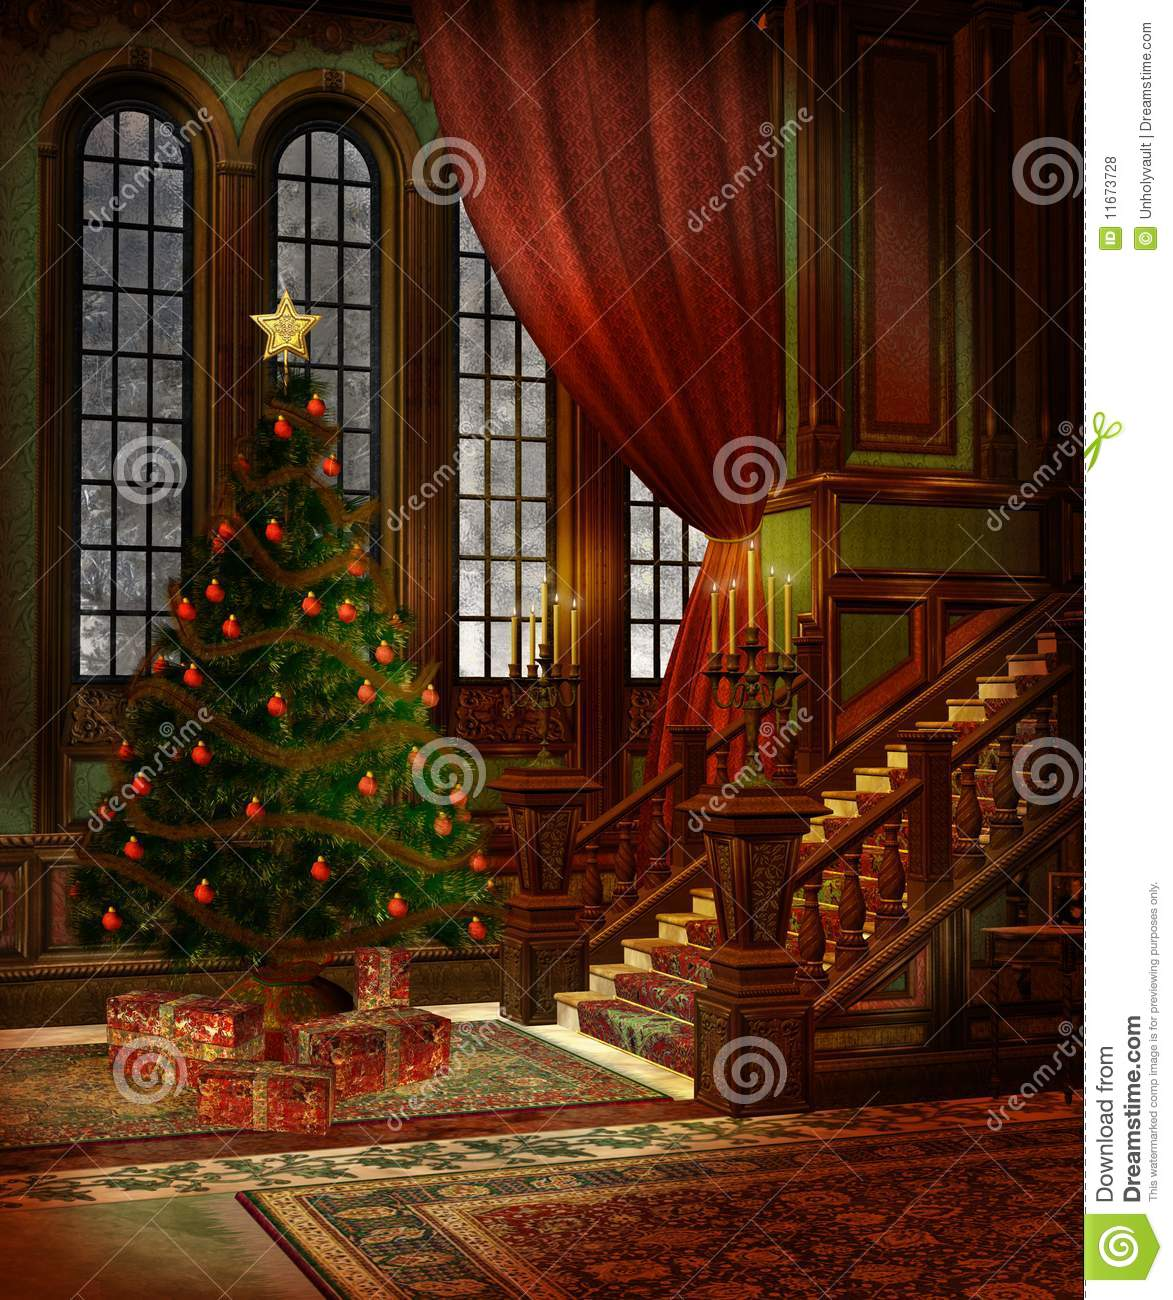 Christmas Scenery 3 Royalty Free Stock Photos Image